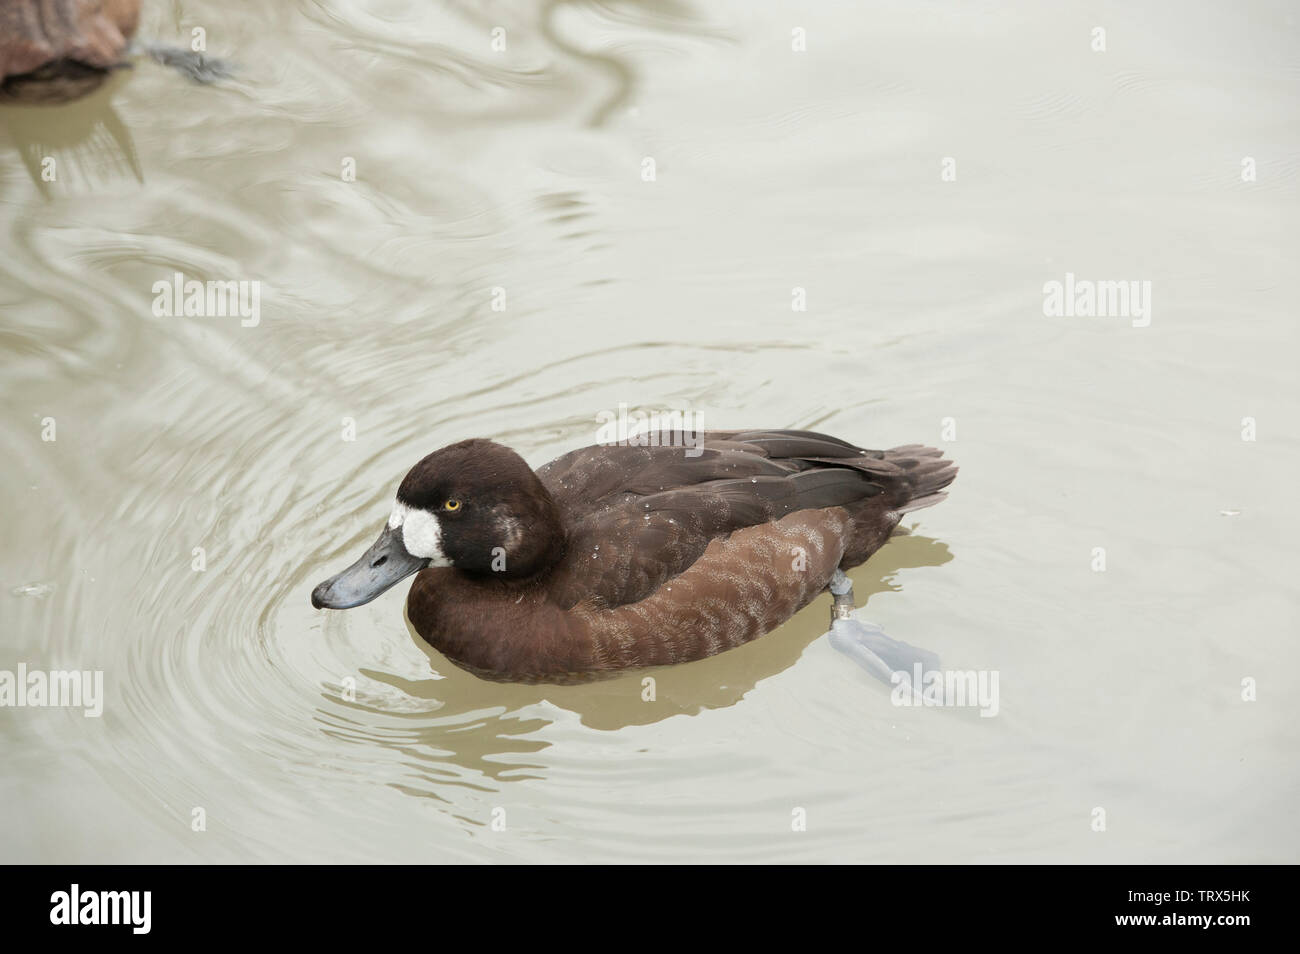 Ruddy Duck (Oxyura jamaicernsis) male with breeding plumage who swims in a pond. Ruddy Duck a common diving duck on ponds, lakes and sheltered bays in - Stock Image